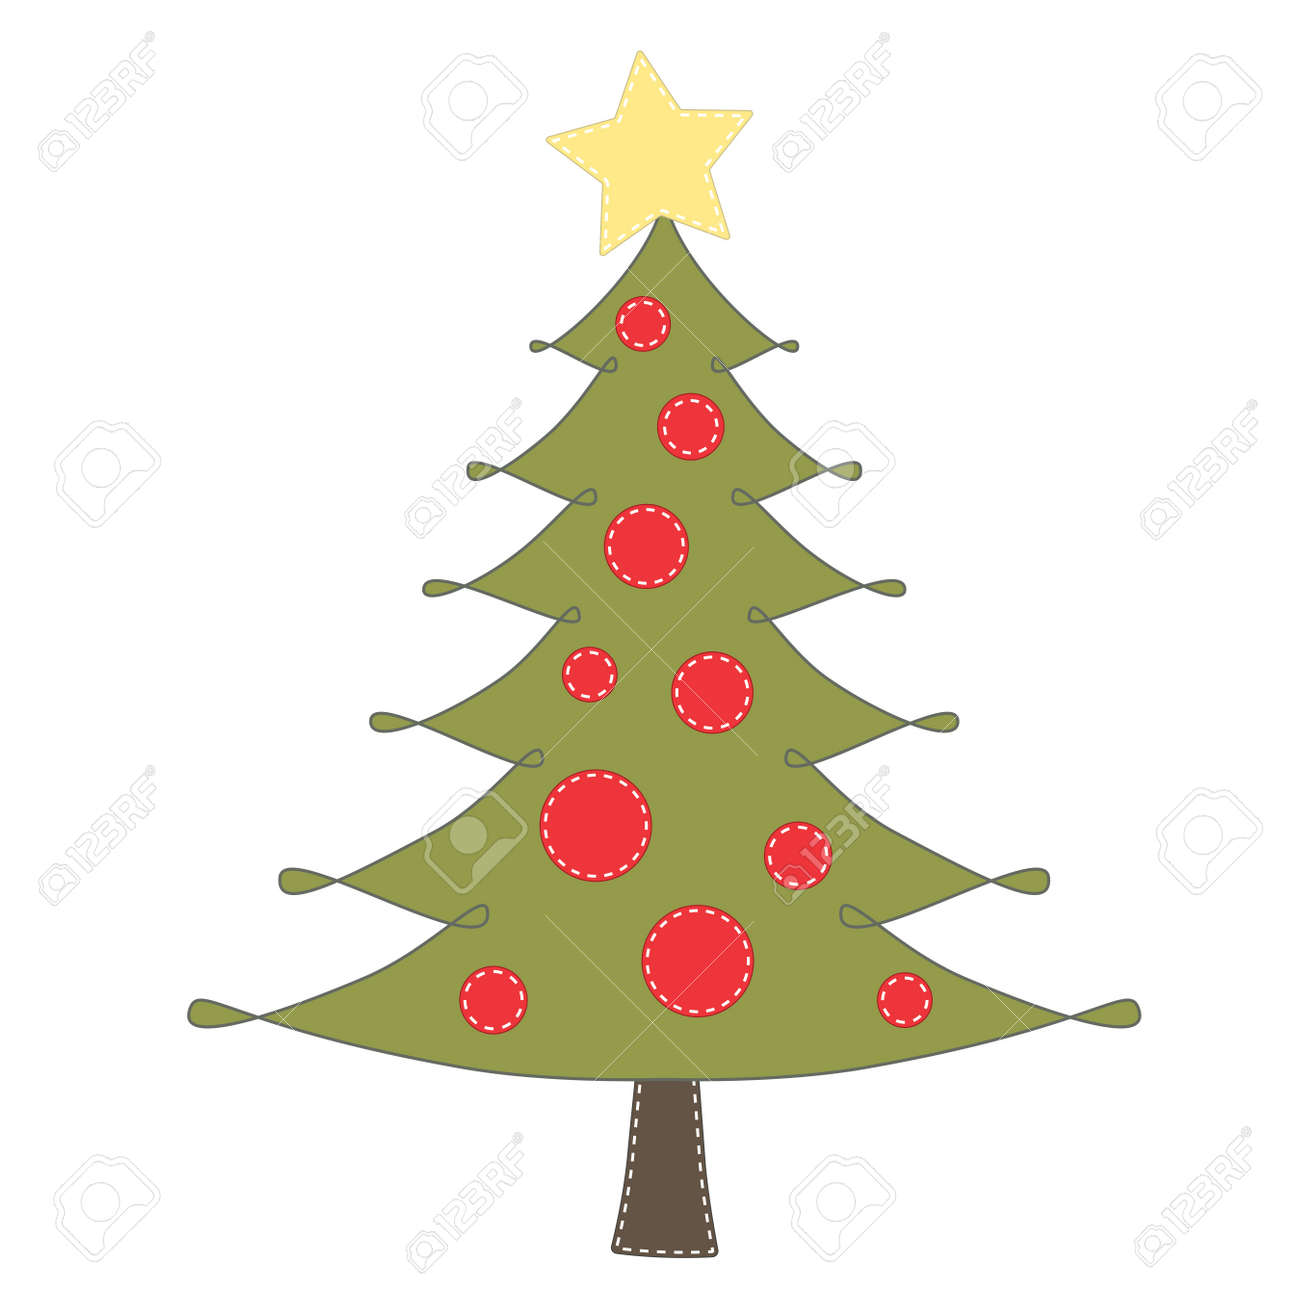 Christmas Tree Transparent Background.Christmas Tree Clip Art On Transparent Background For Scrapbooking